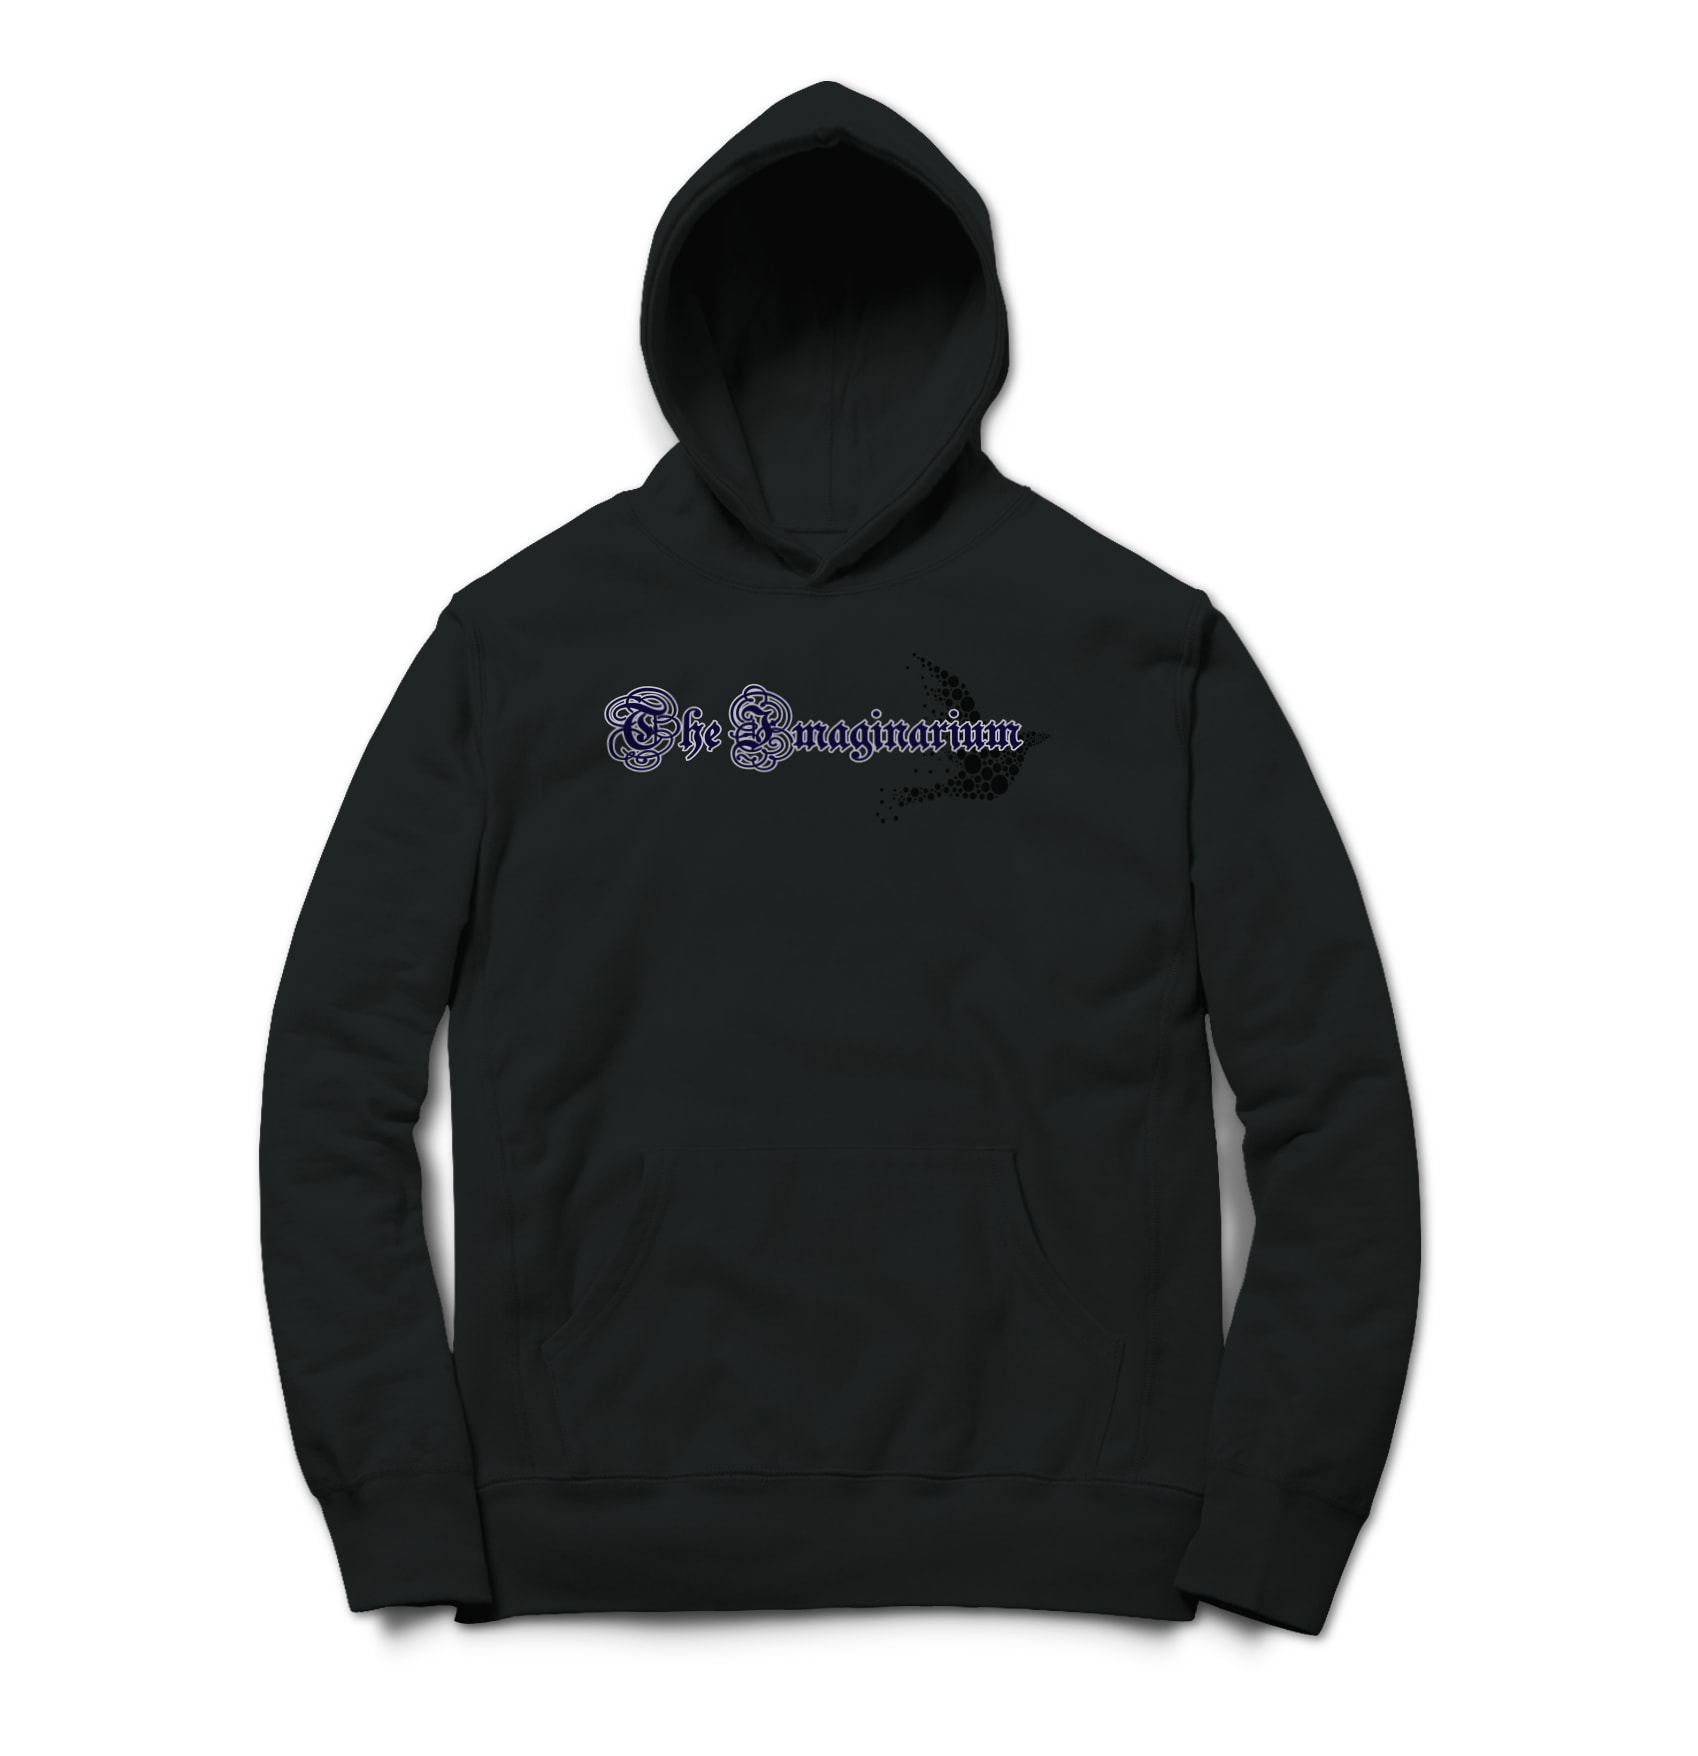 The imaginarium the imaginarium logo apparel 1547036019